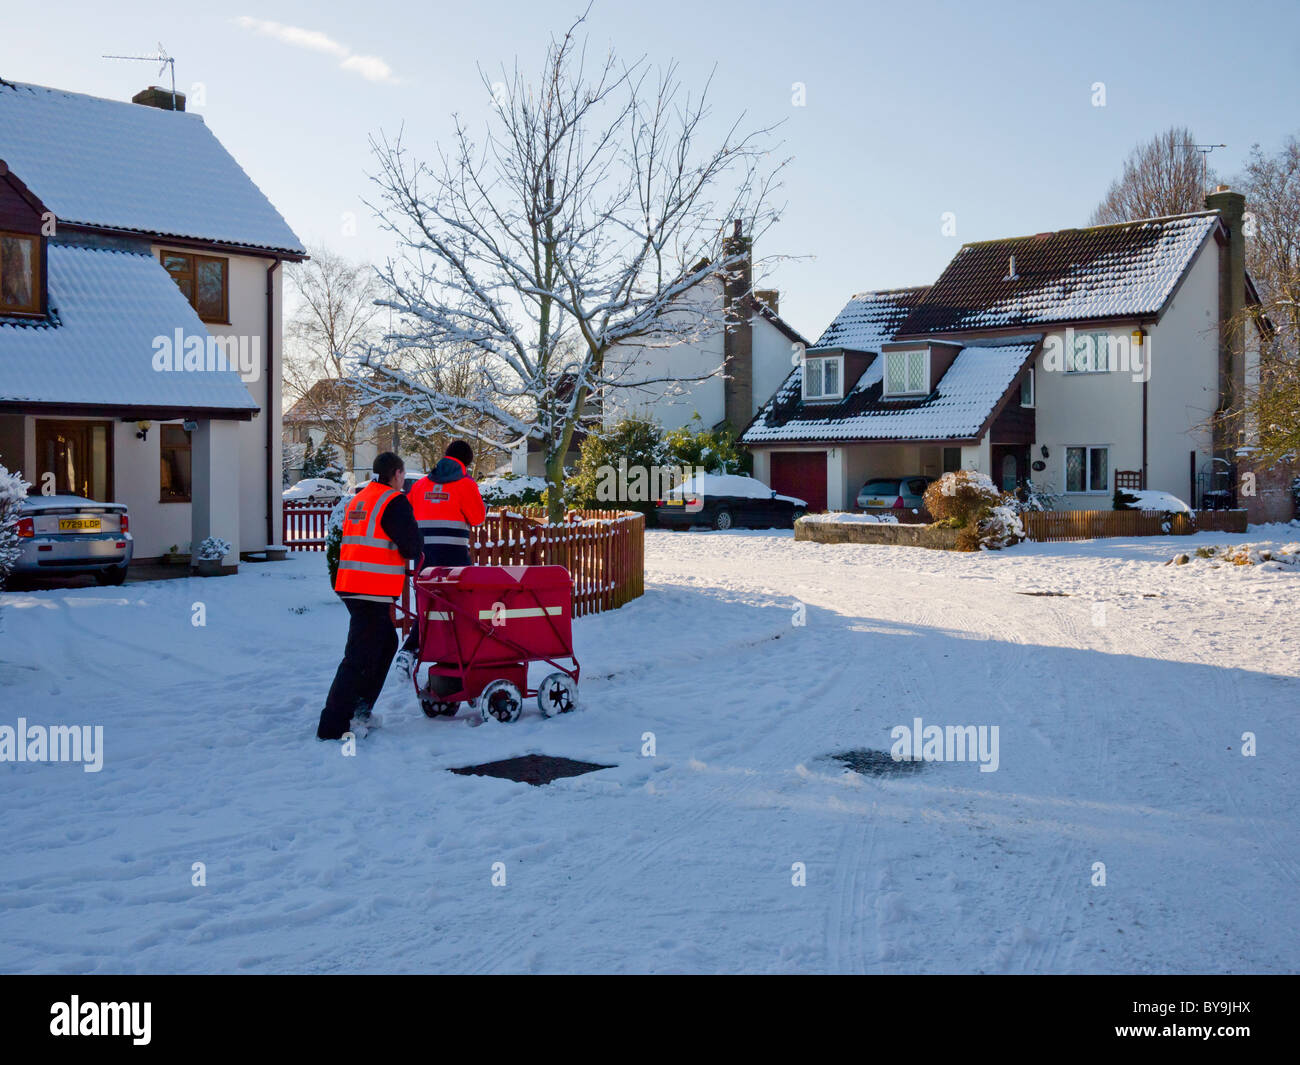 Two postmen in the street delivering mail to houses. Wrington, North Somerset, England. Stock Photo